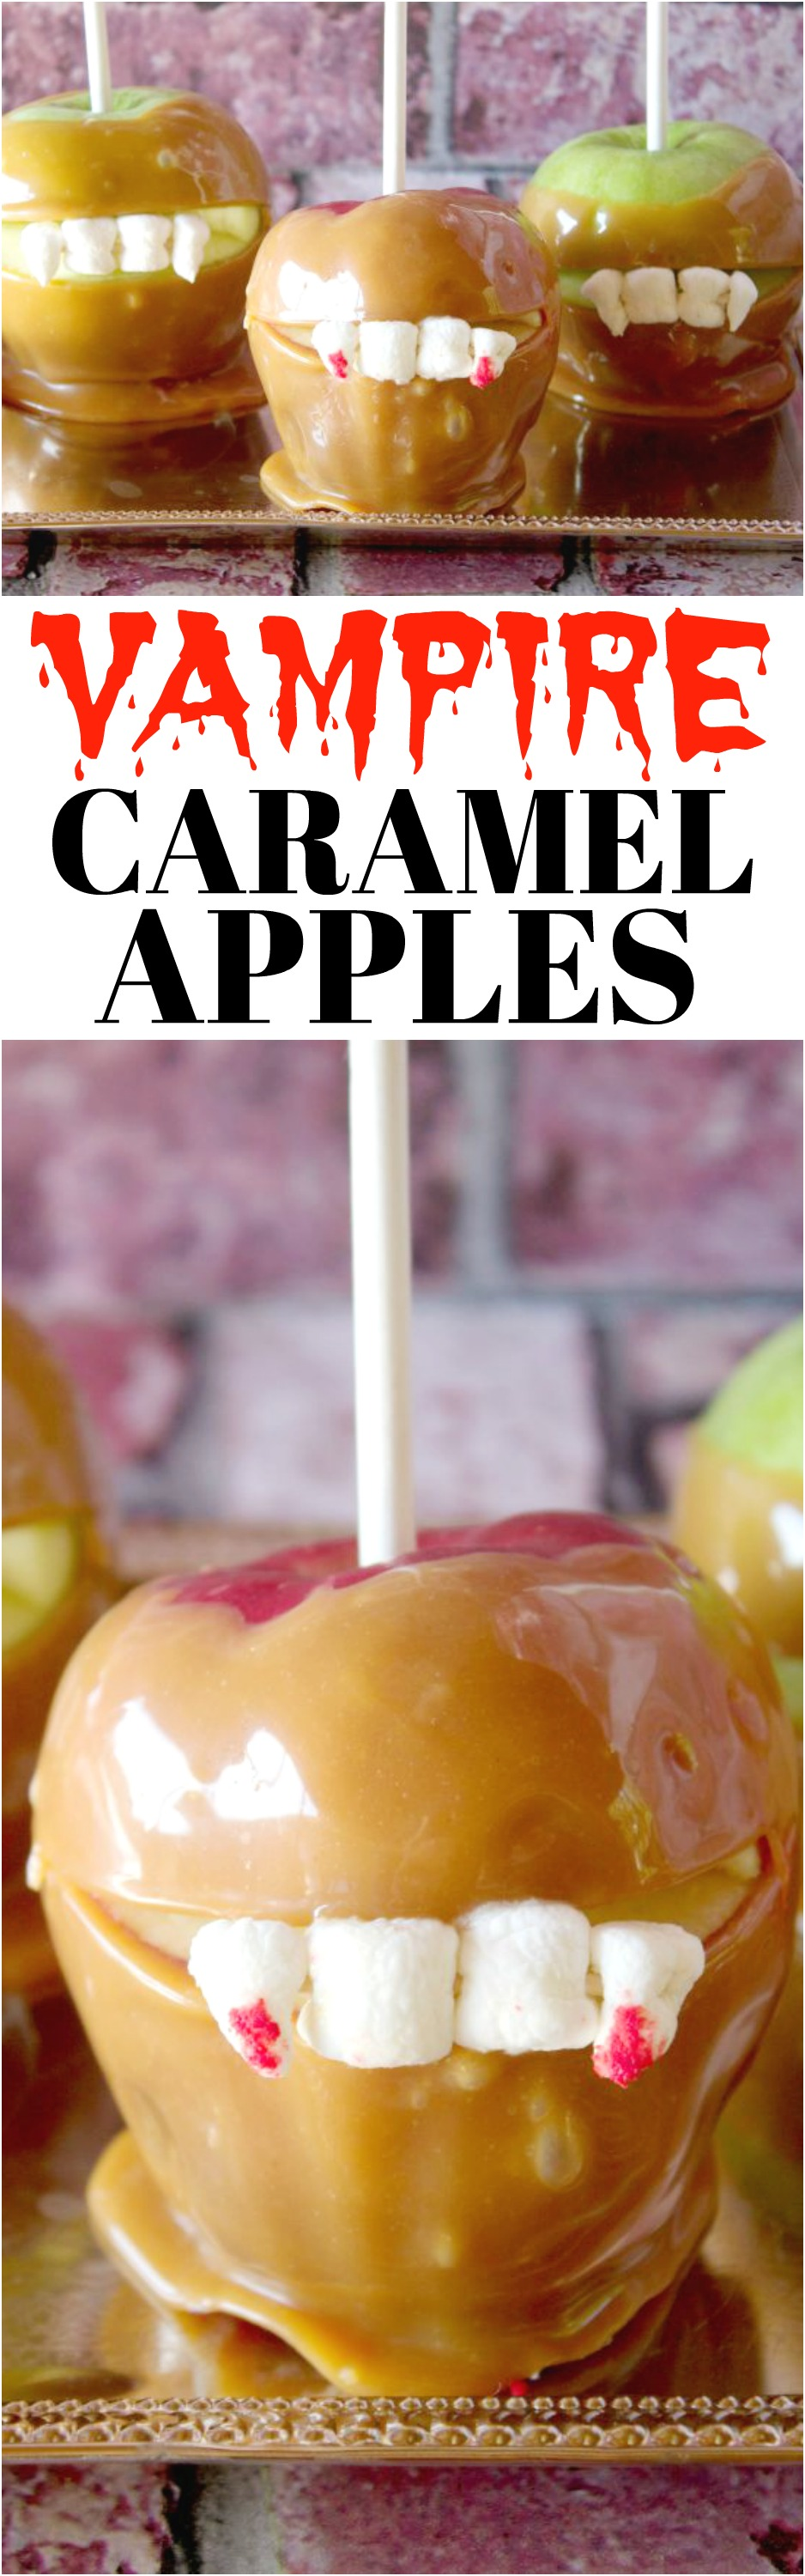 VAMPIRE TEETH CARAMEL APPLES: These Halloween Caramel Apples are the perfect spooky treat for kids. They are a kid friendly halloween dessert that are fun to make and great for Halloween Parties.